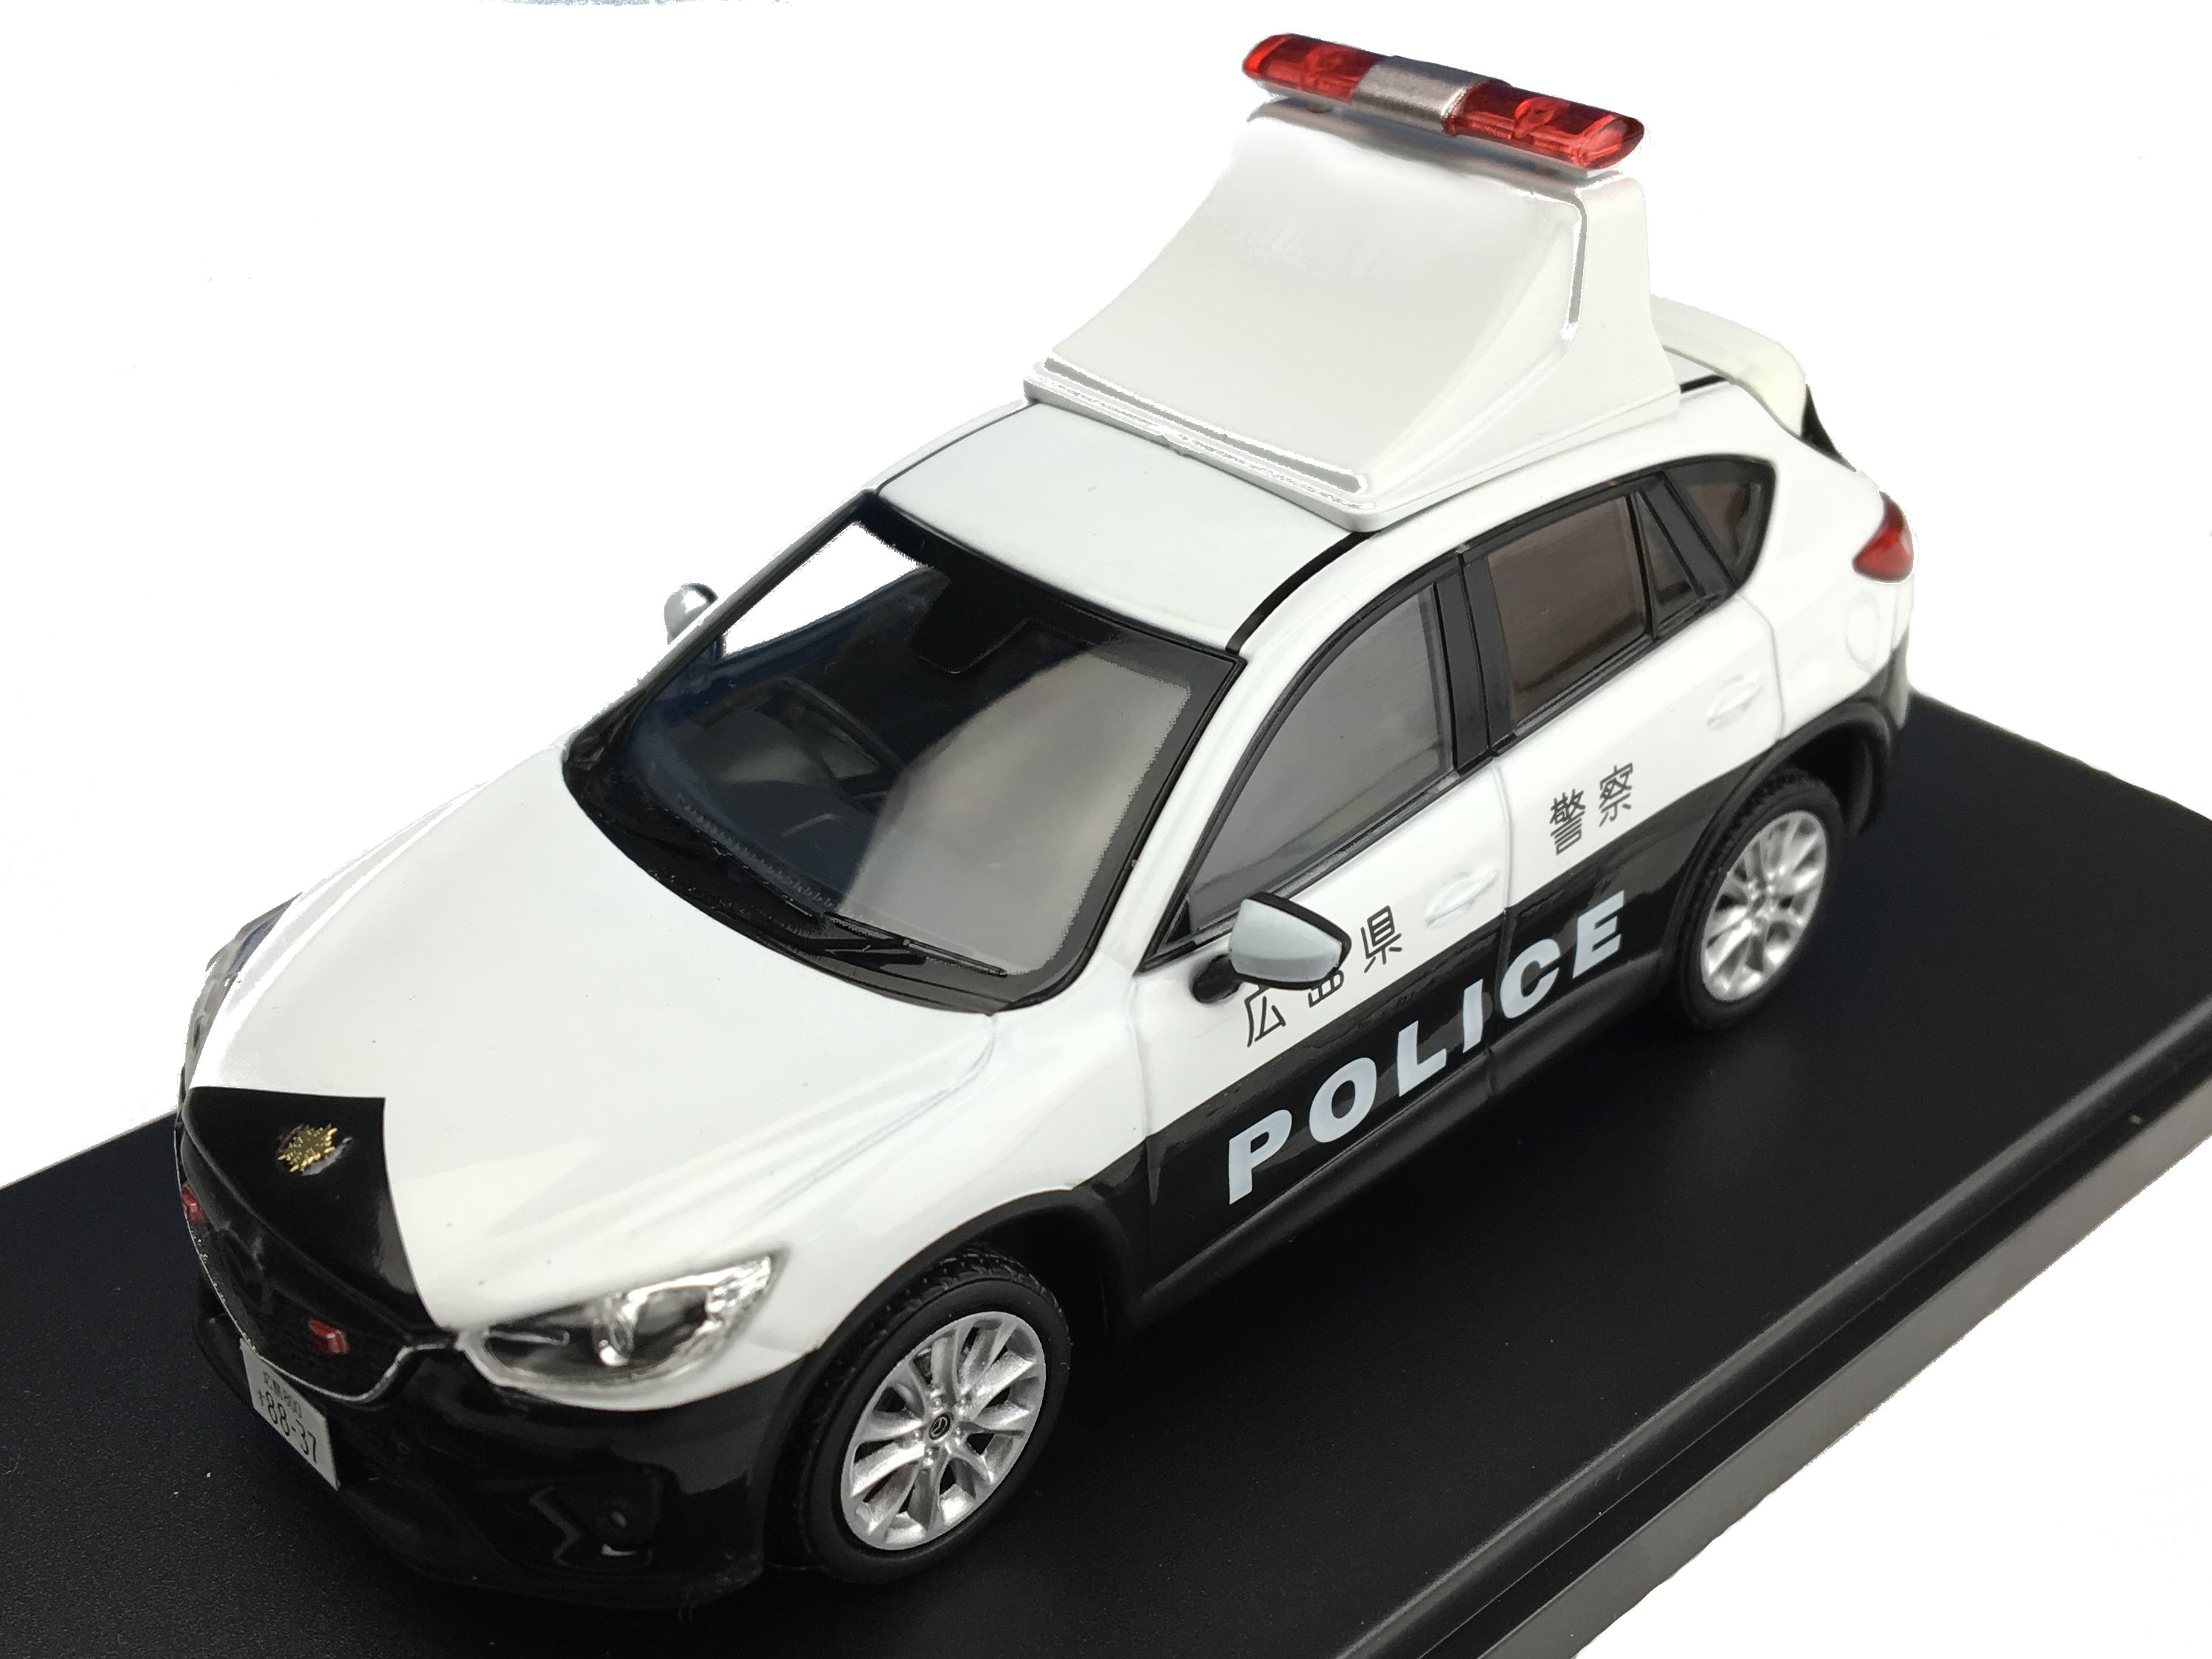 [PremiumX] 1/43 Mazda CX-5 Japanese Police with LED roof sign 2013 広島県警察